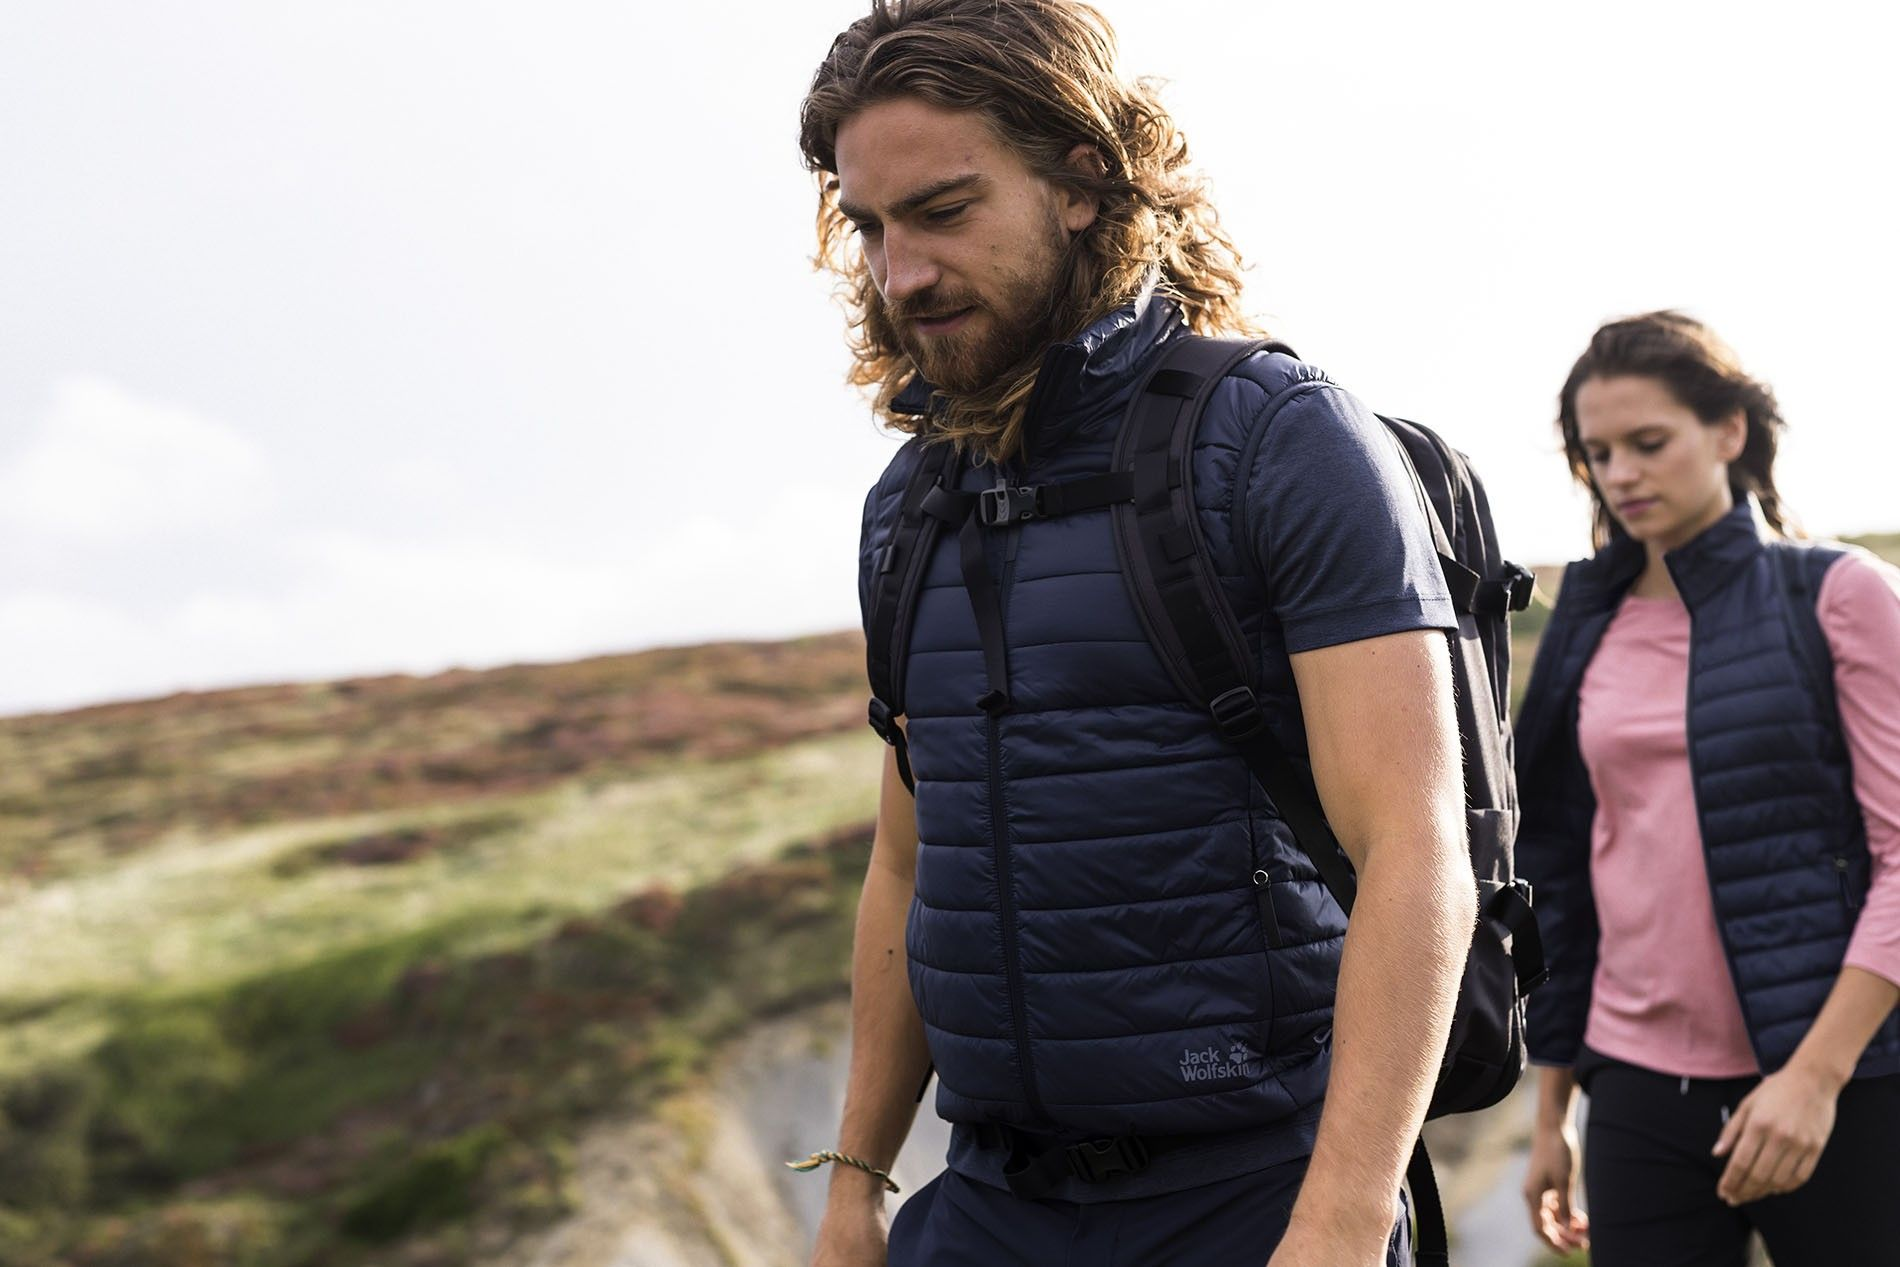 People hike in new Jack Wolfskin collection